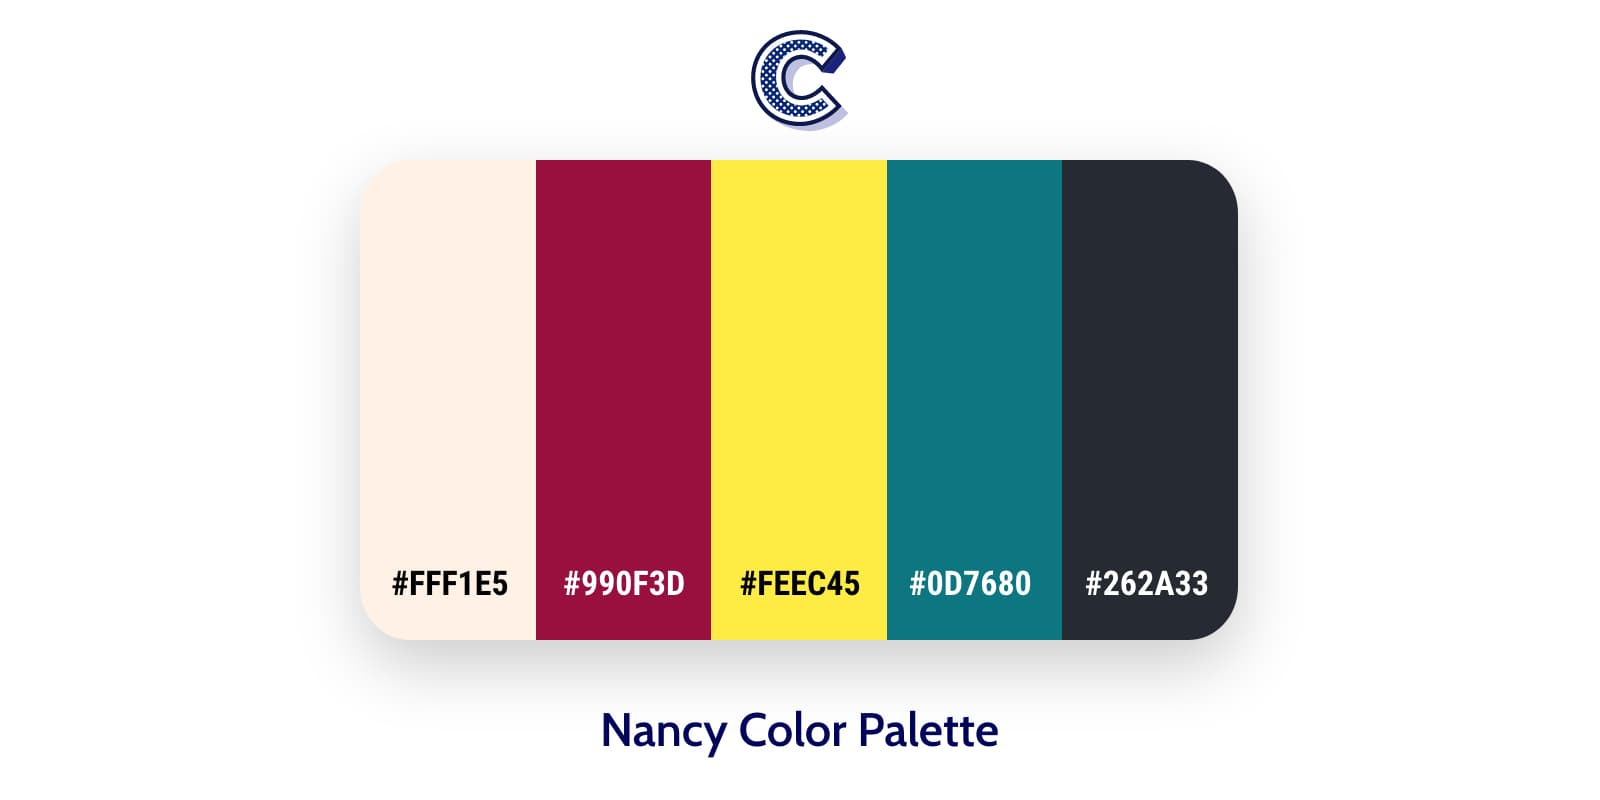 the featured image of nancy color palette